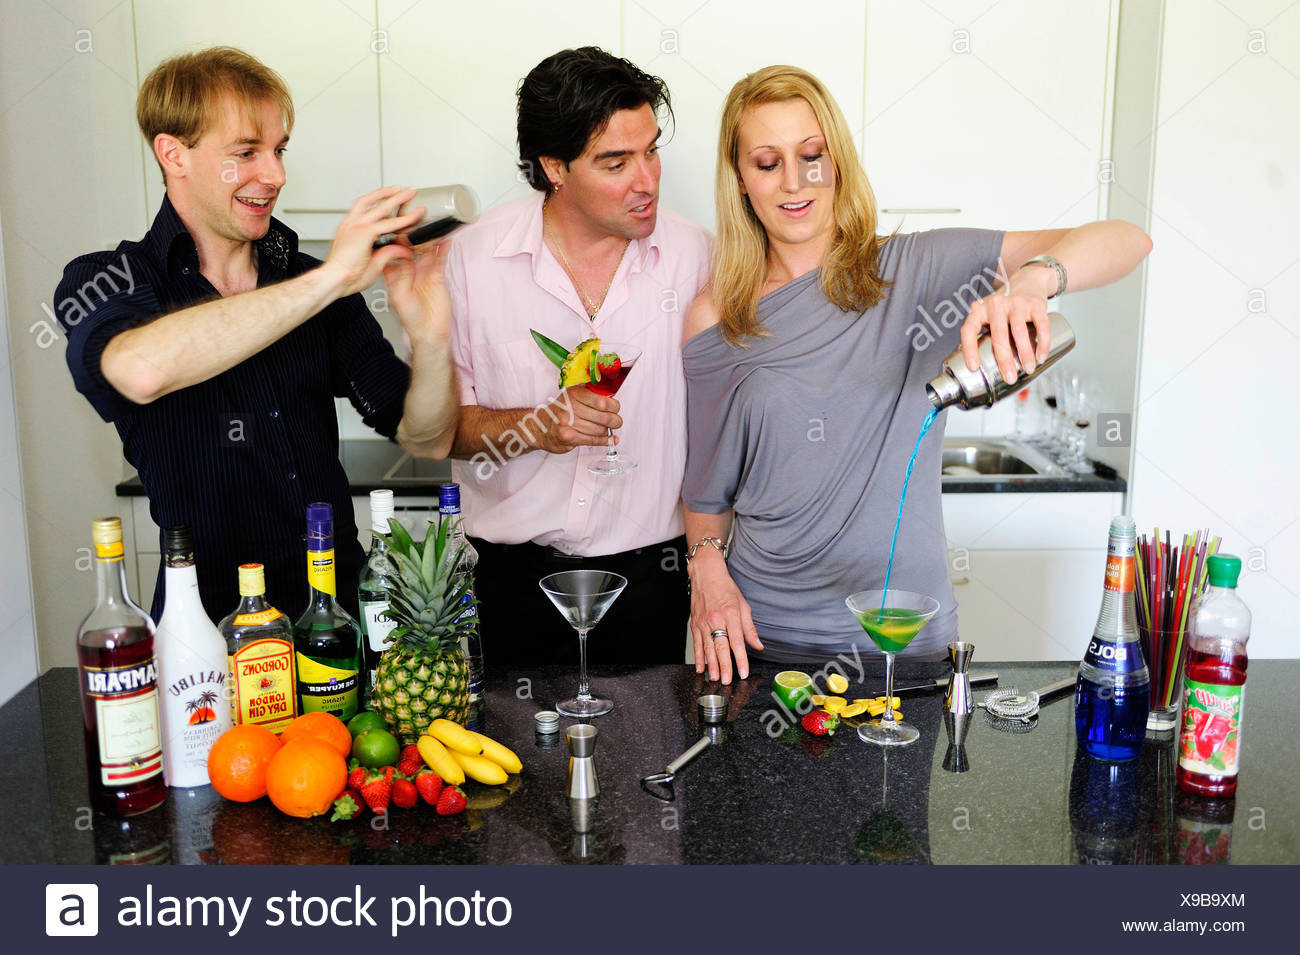 Friends at the bar mixing drinks Stock Photo